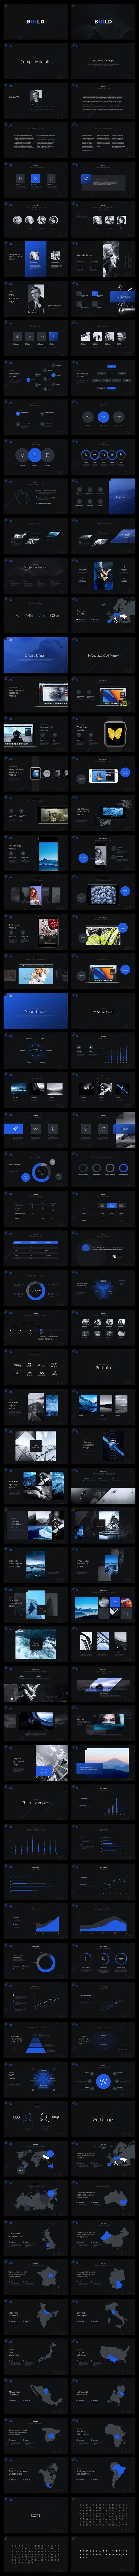 BUILD Keynote Presentation Template by ReworkMedia on @creativemarket